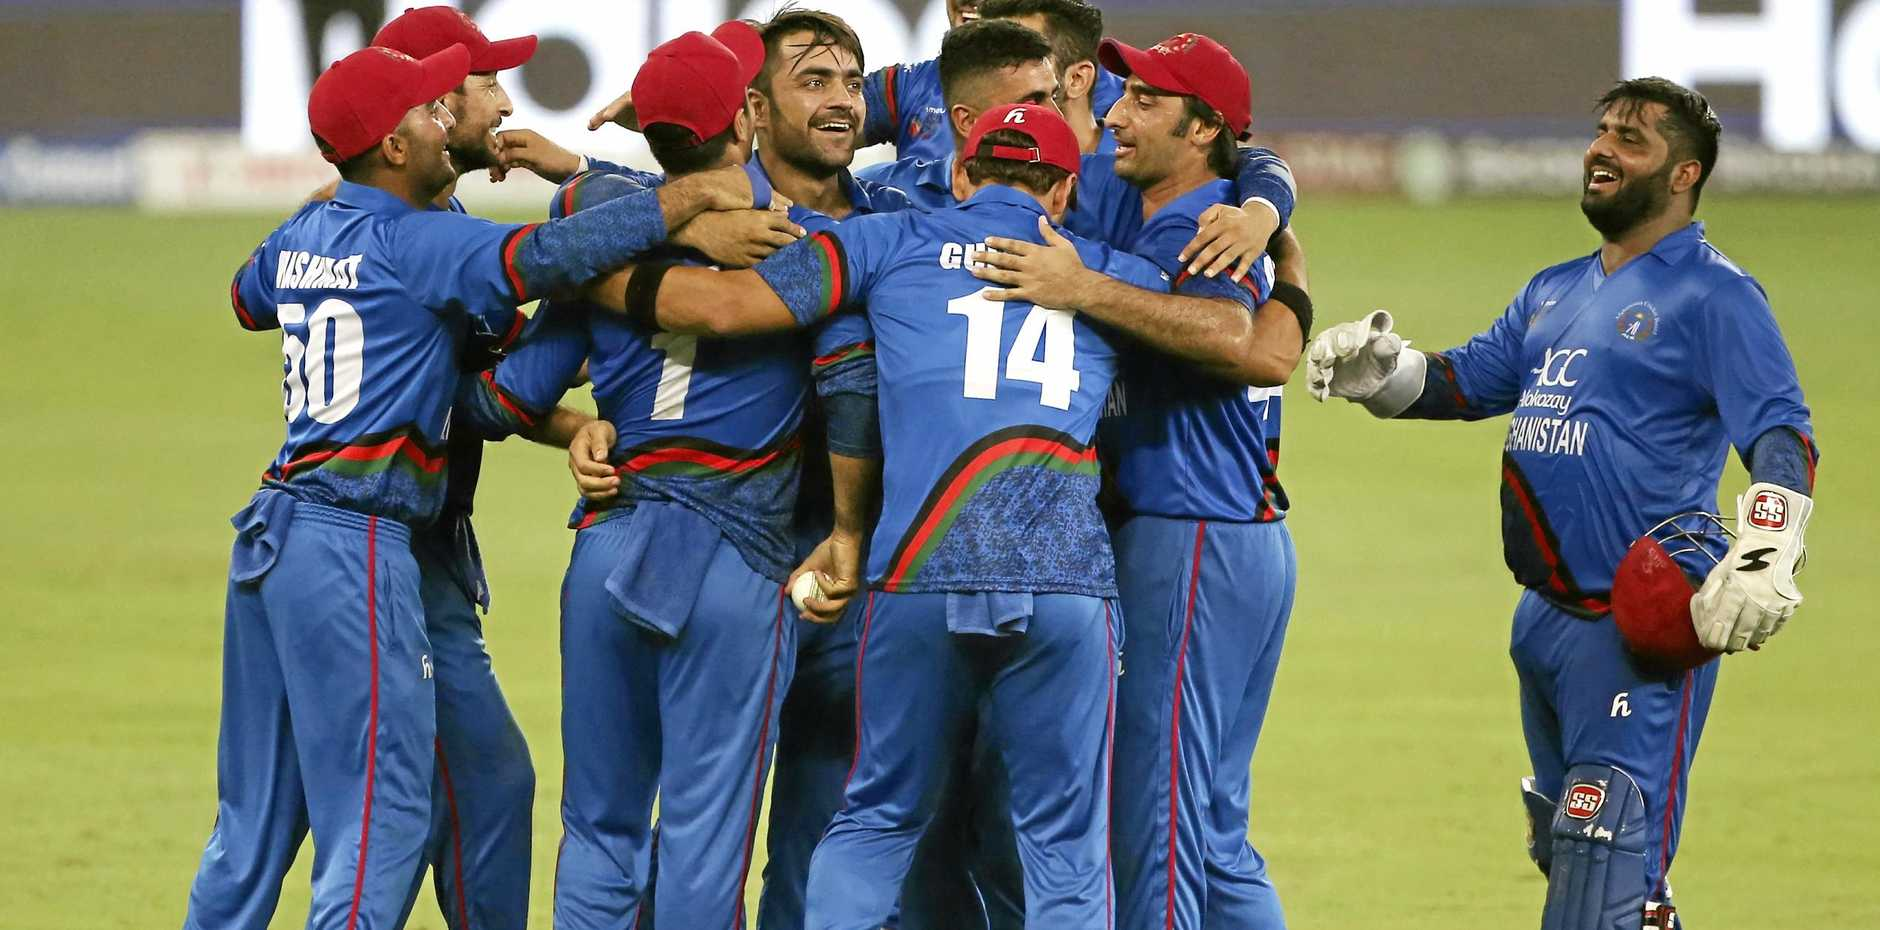 Afghanistan players celebrate the dismissal of India's Ravindra Jadeja during their Asia Cup one day international match in Dubai. Picture: Aijaz Rahi/AP